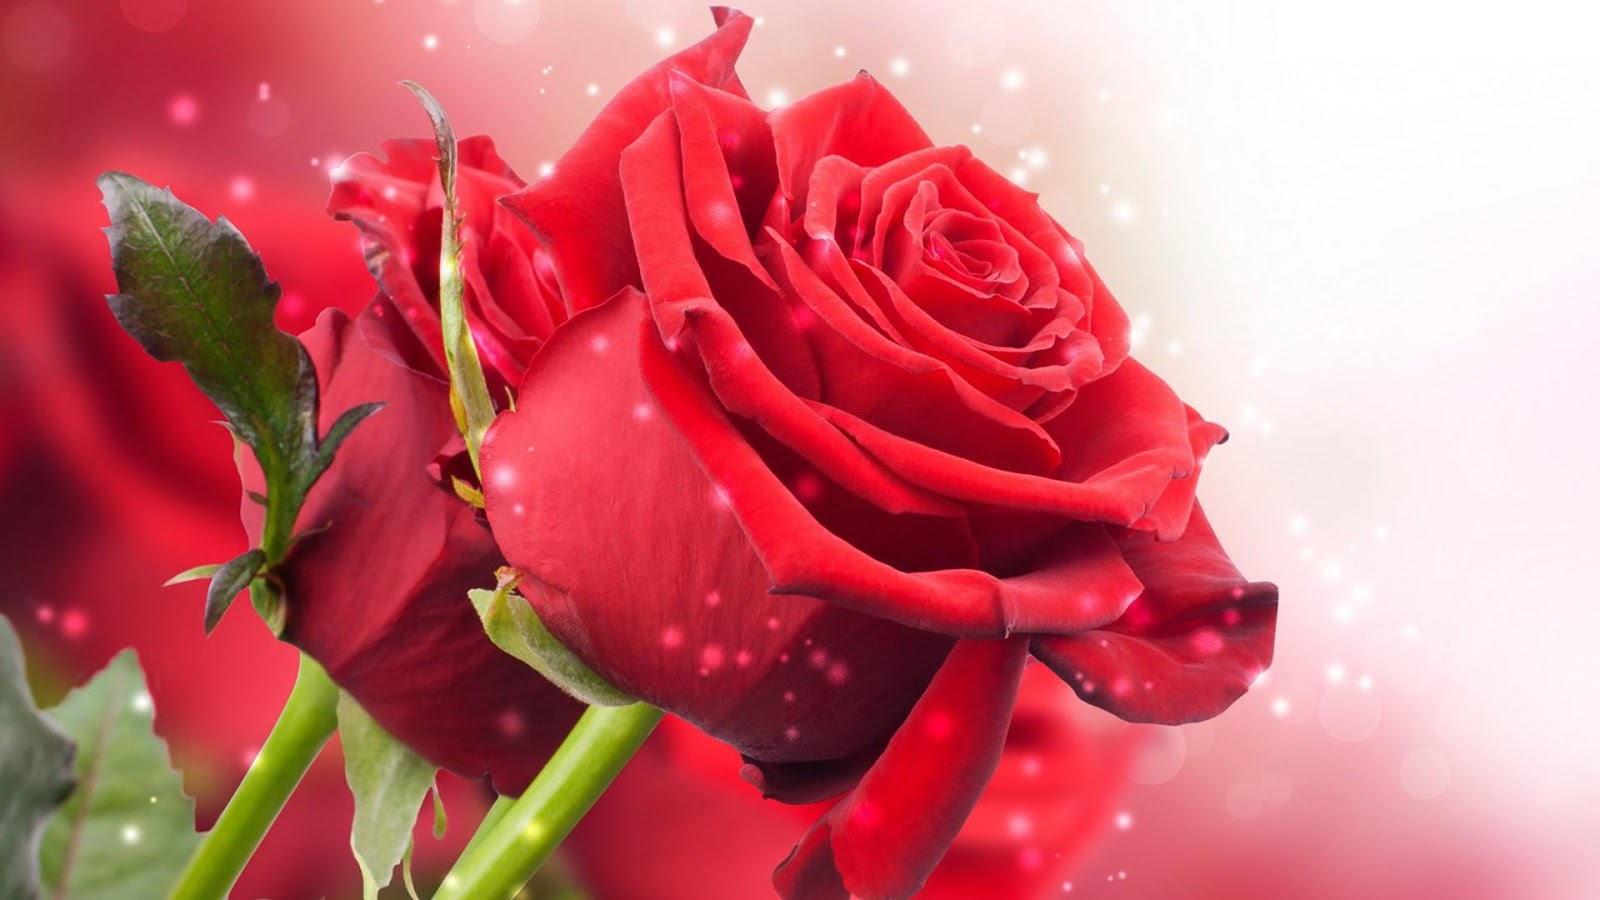 rose day wallpaper hd all greetings valentines cards new year